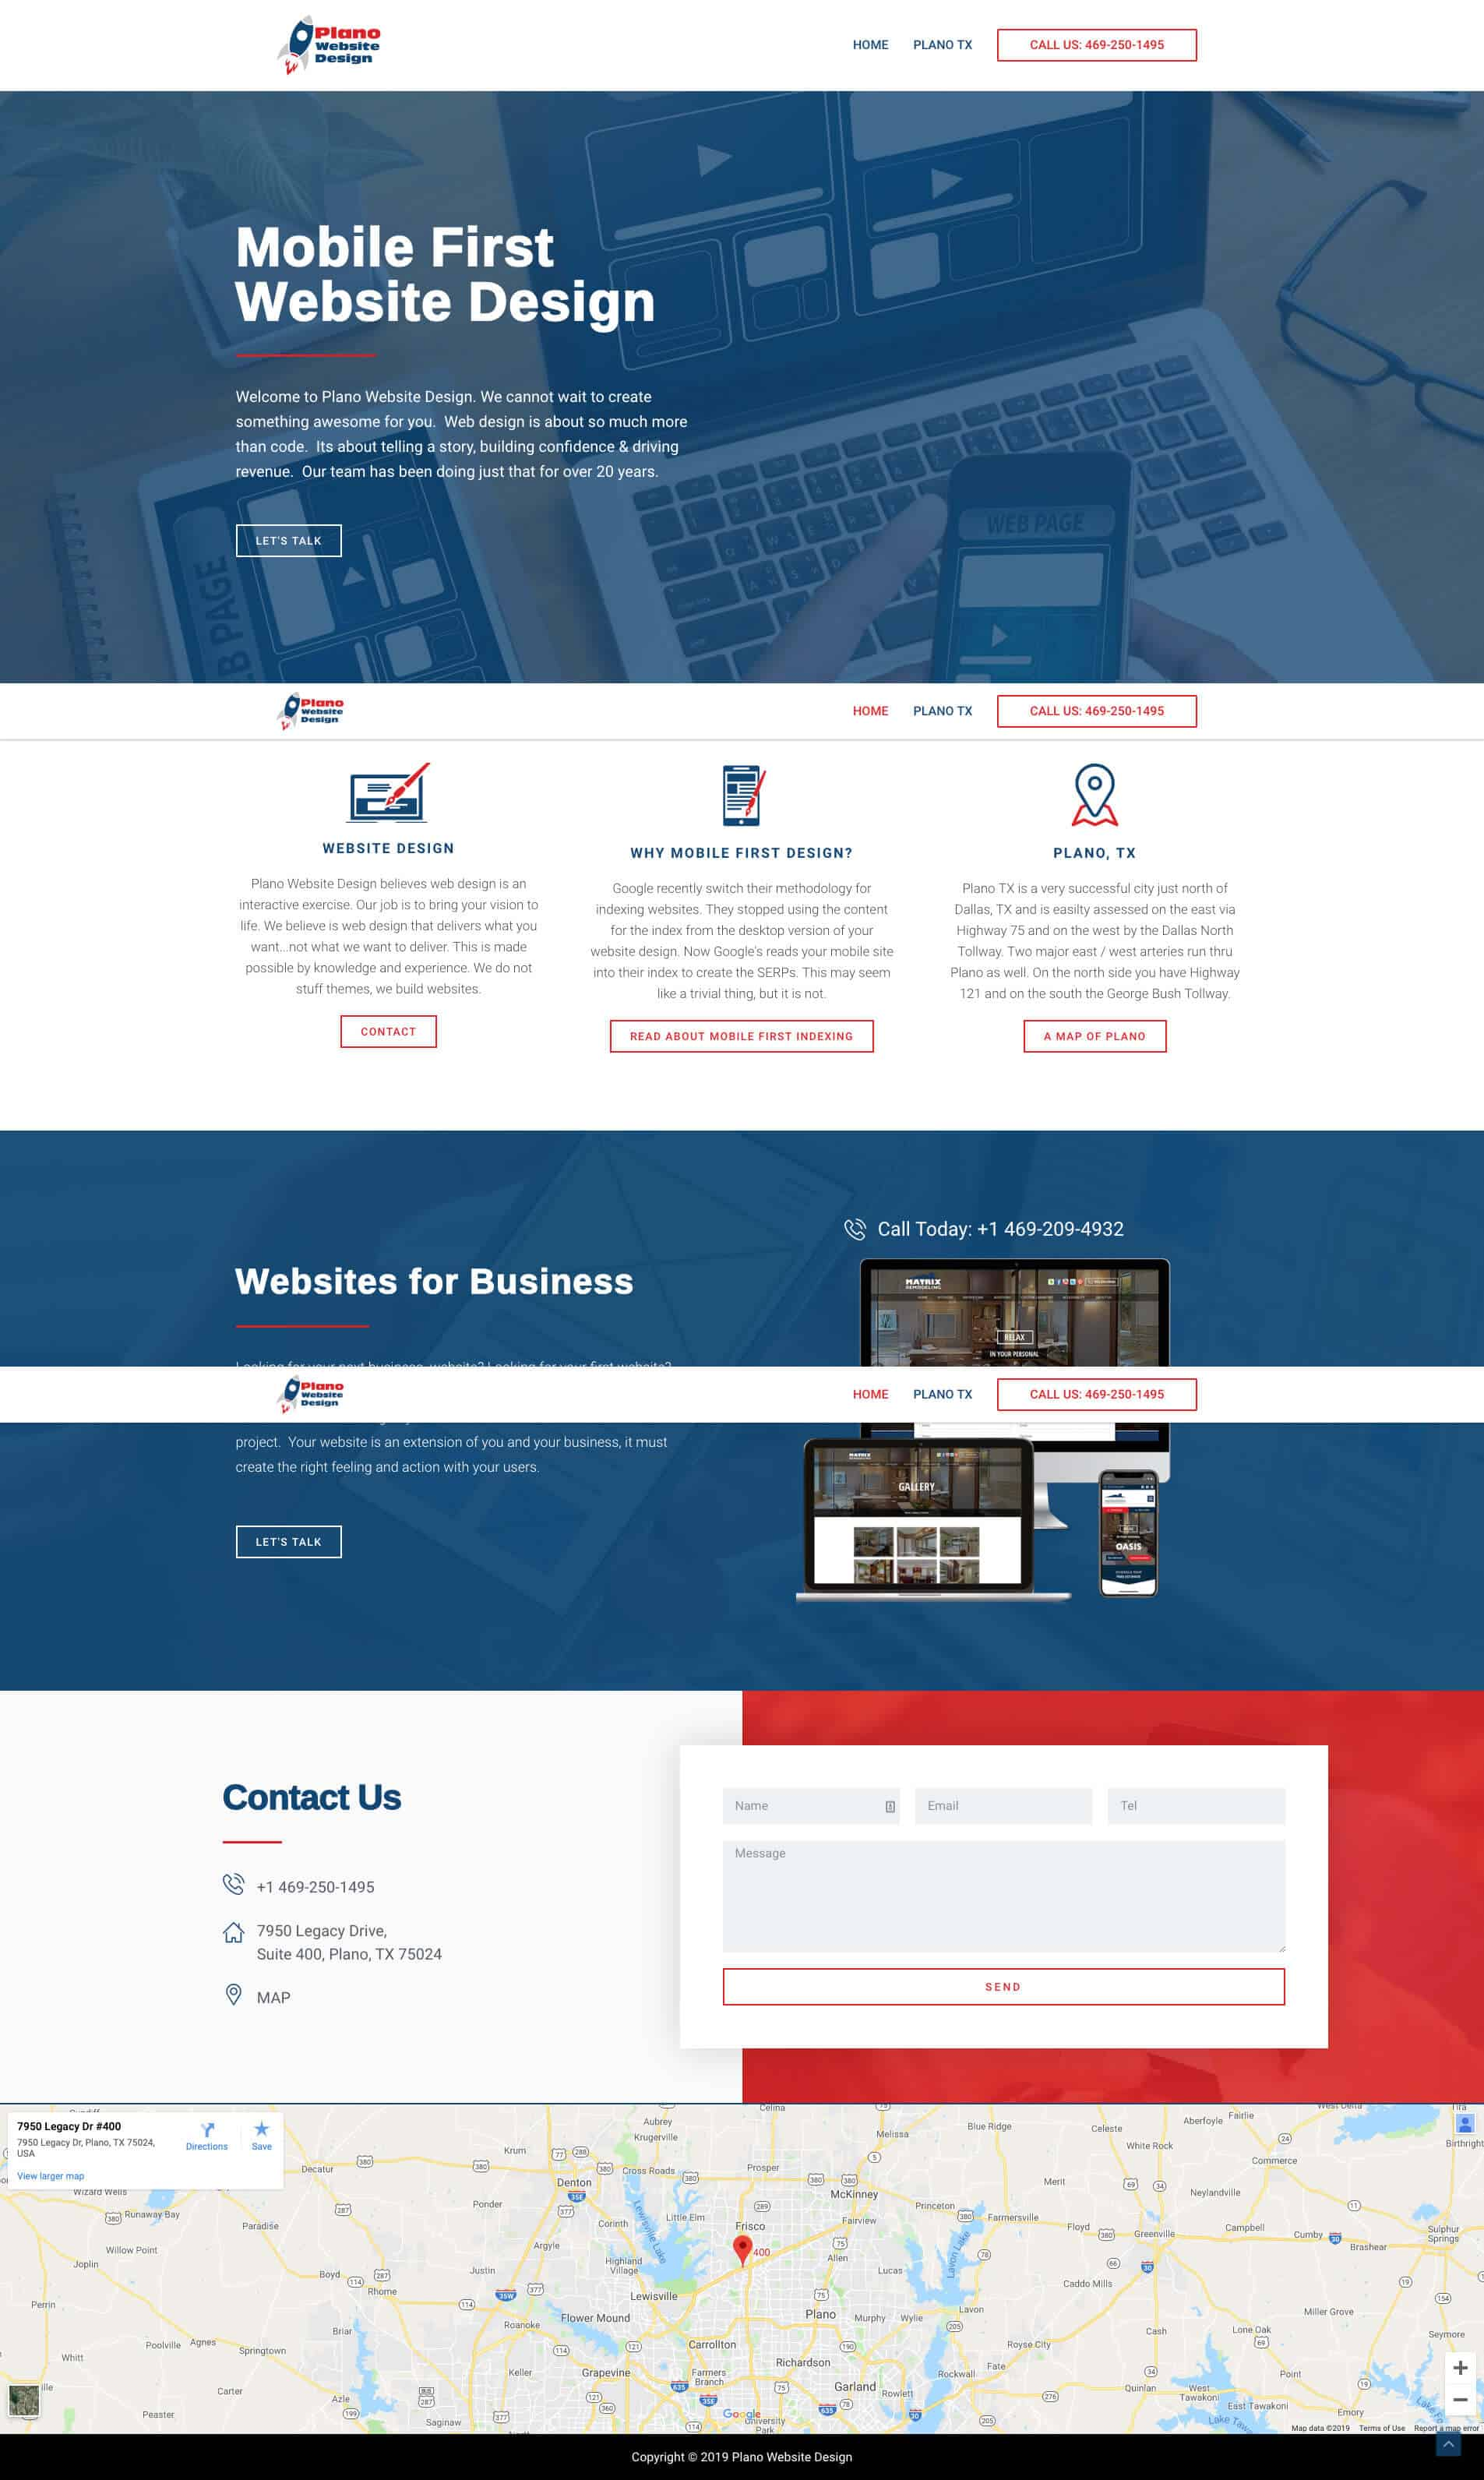 plano-website-design-full